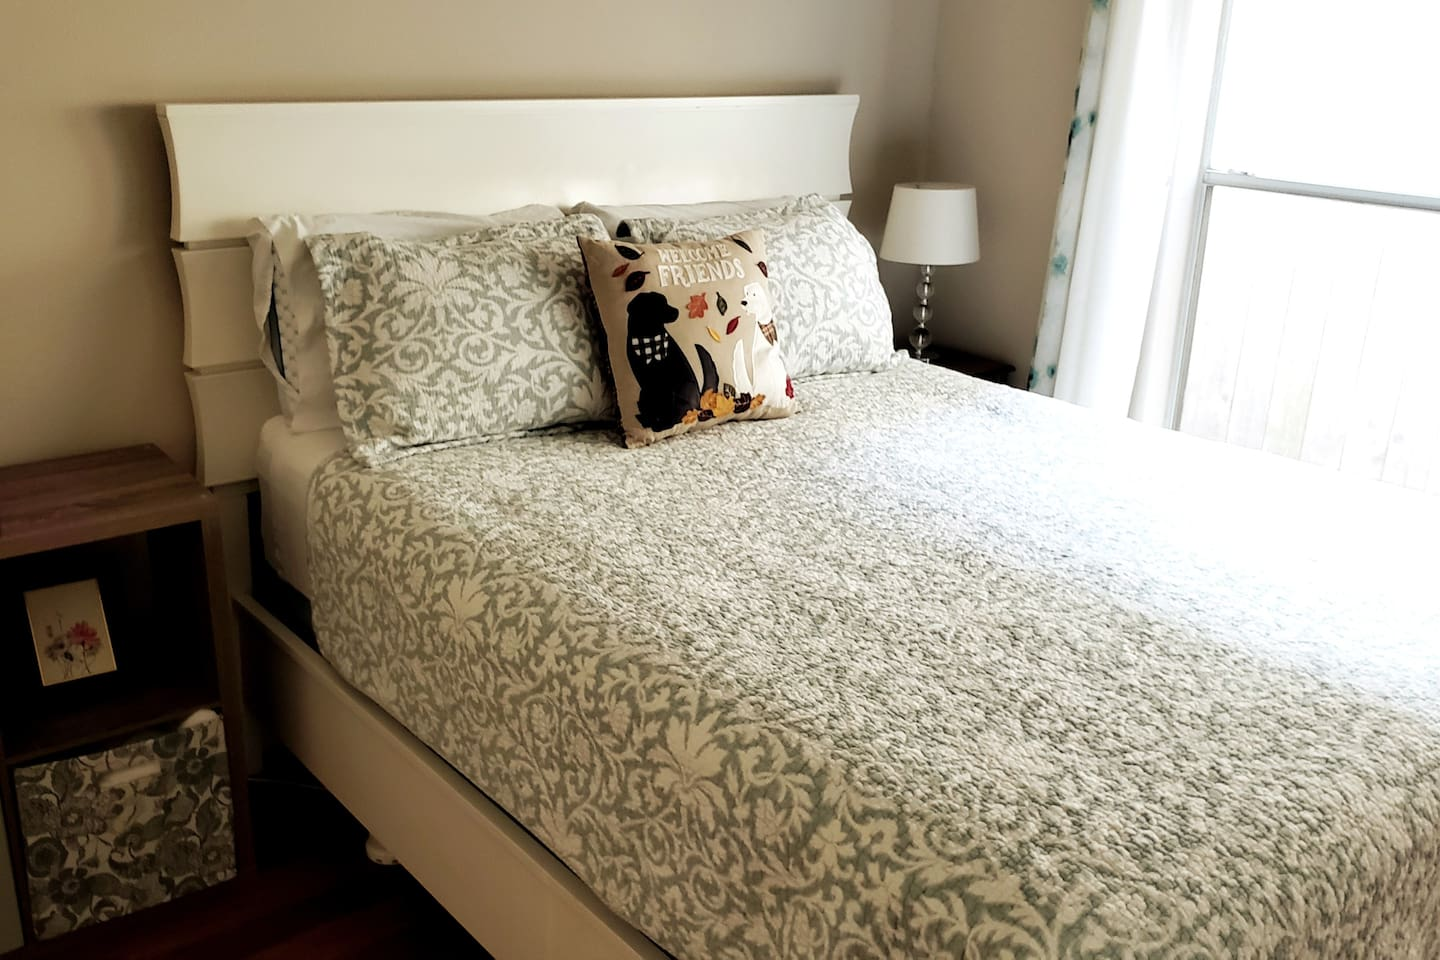 Comfortable queen-size bed! Hotel-grade pillows and comforter.  Extra blankets and sheets available in closet for your use.